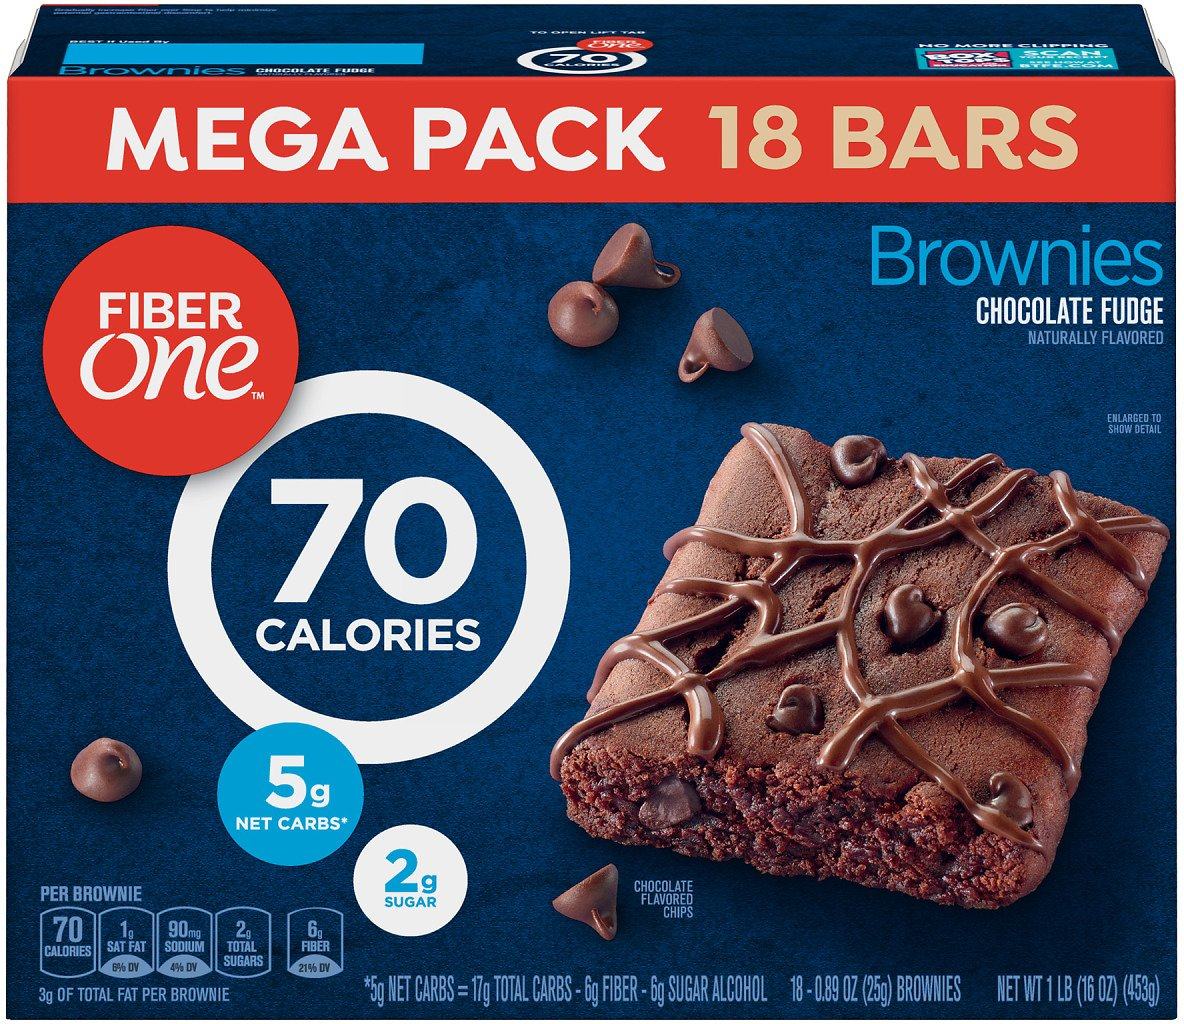 Fiber One 70 Calorie Chocolate Fudge Brownie Mega Pack 18 Bars 16 Oz